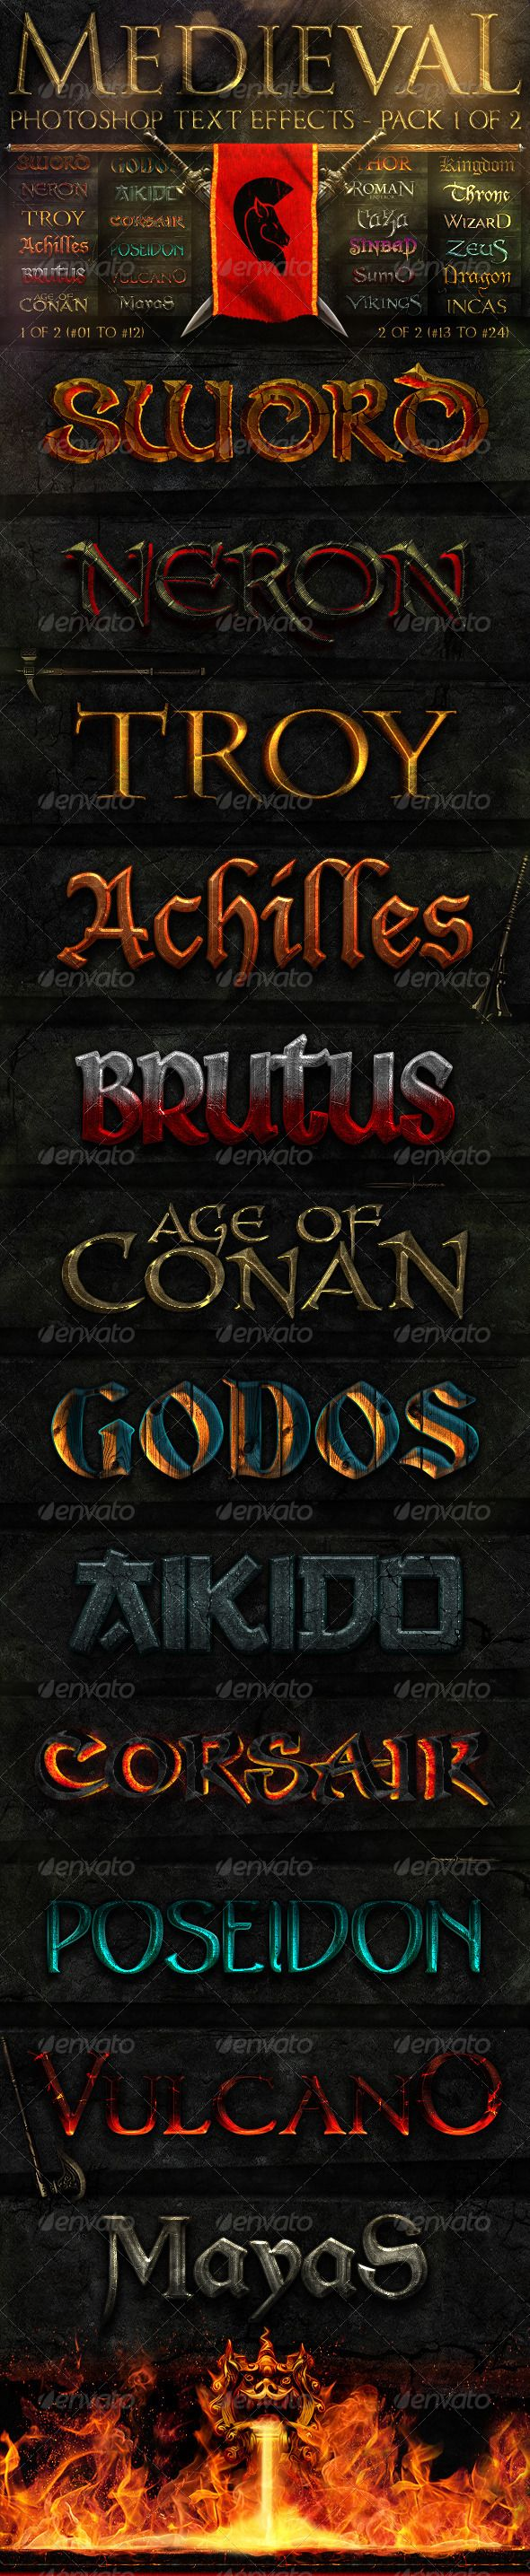 Medieval Photoshop Text Effects 1 of 2